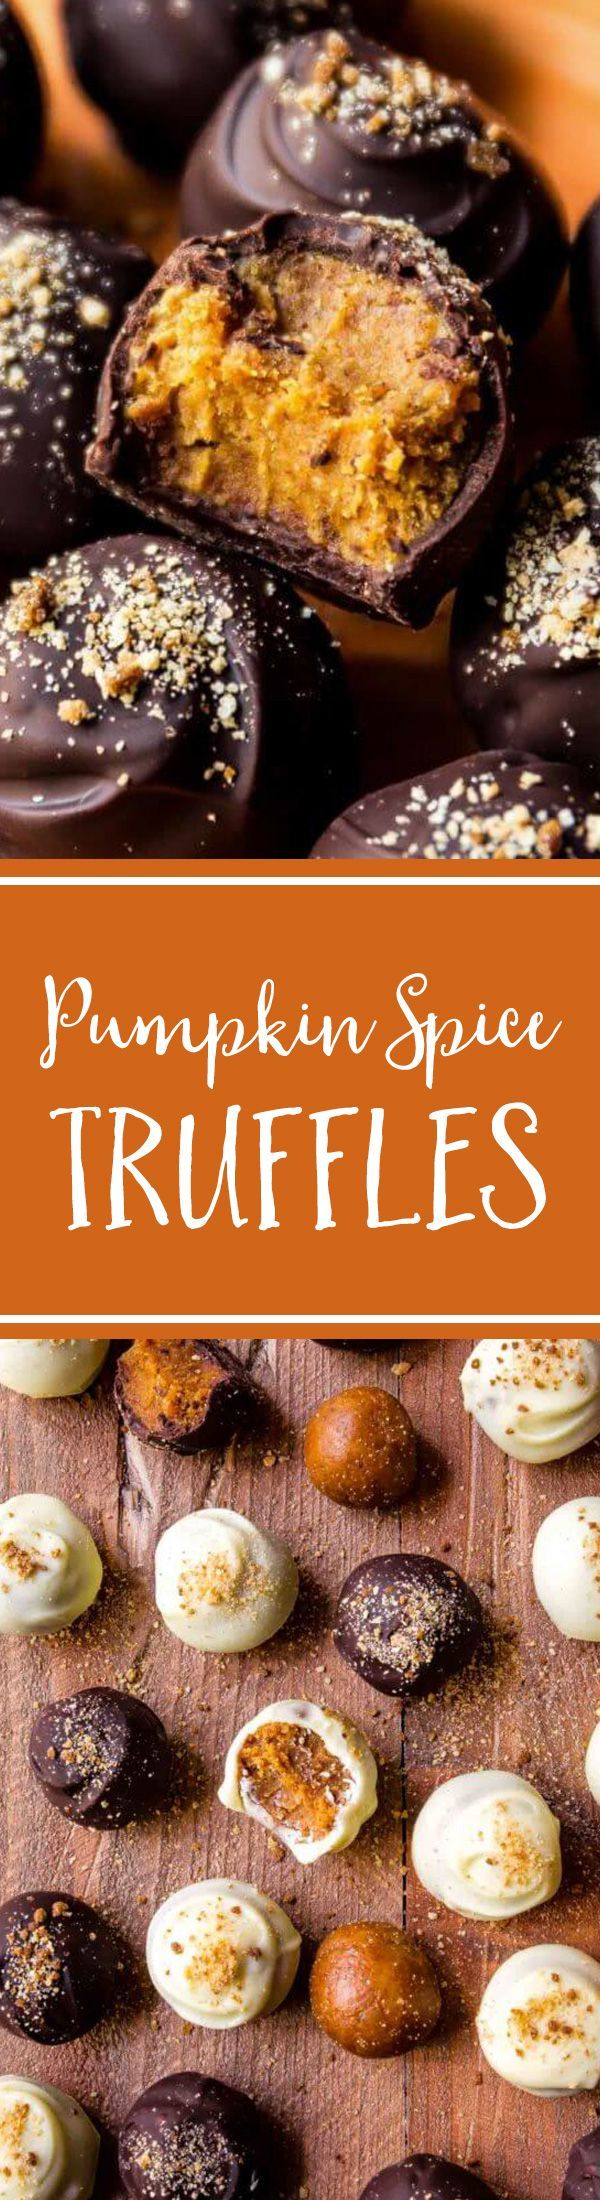 the best Fall treat, make these pumpkin spice truffles-- they're surprisingly easy and can be coated in white or dark chocolate! Recipe on